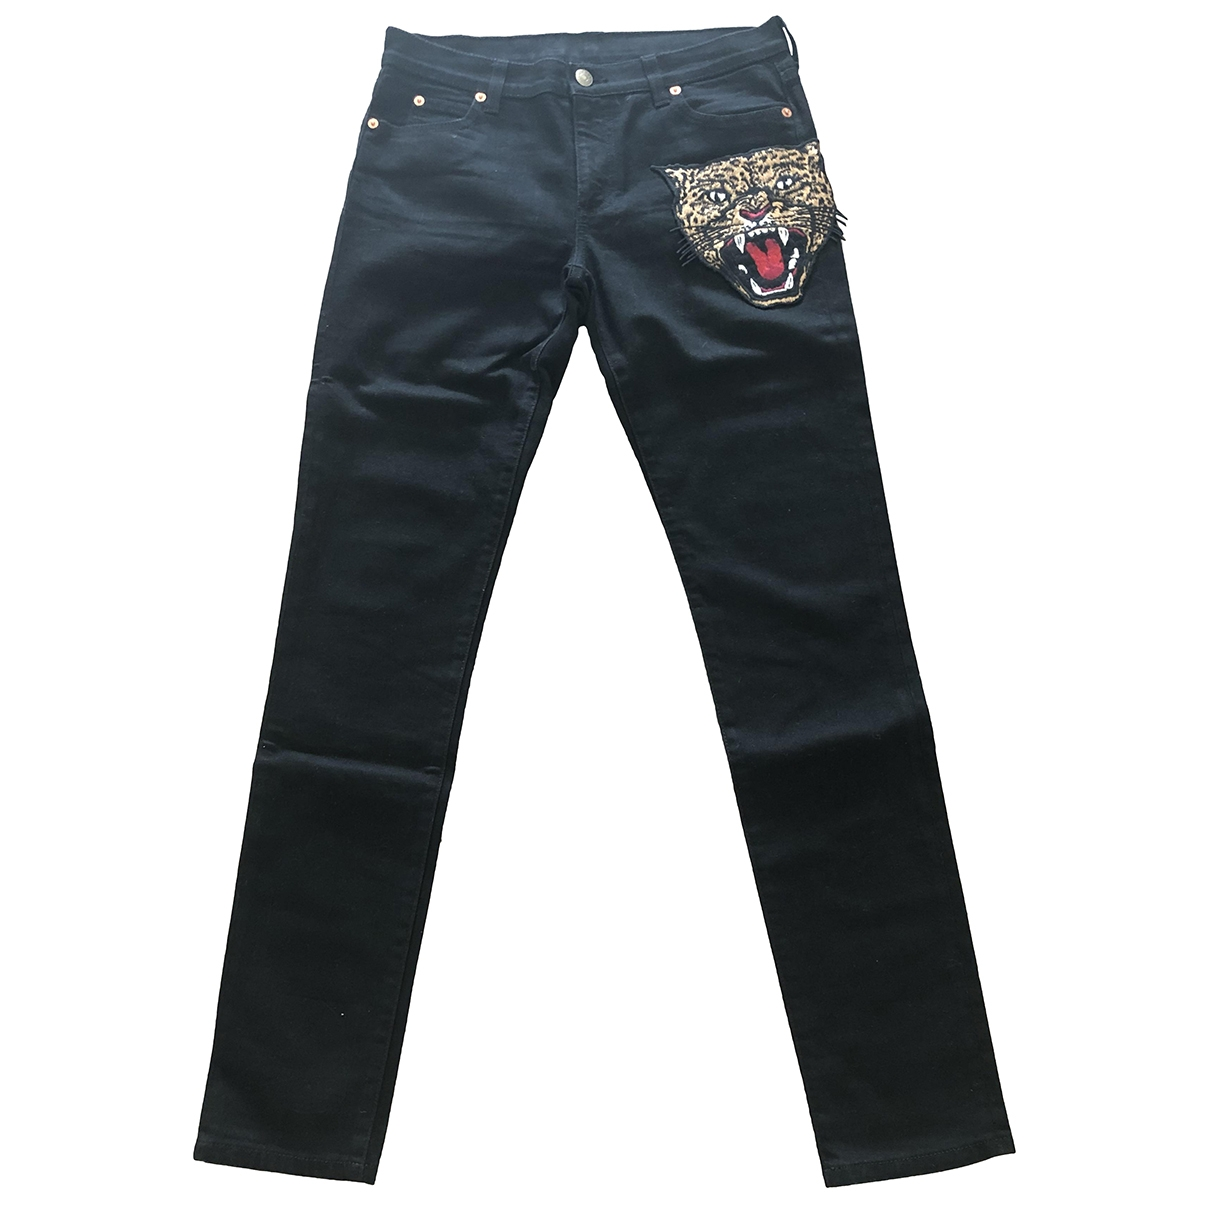 Gucci \N Black Denim - Jeans Jeans for Women 27 US